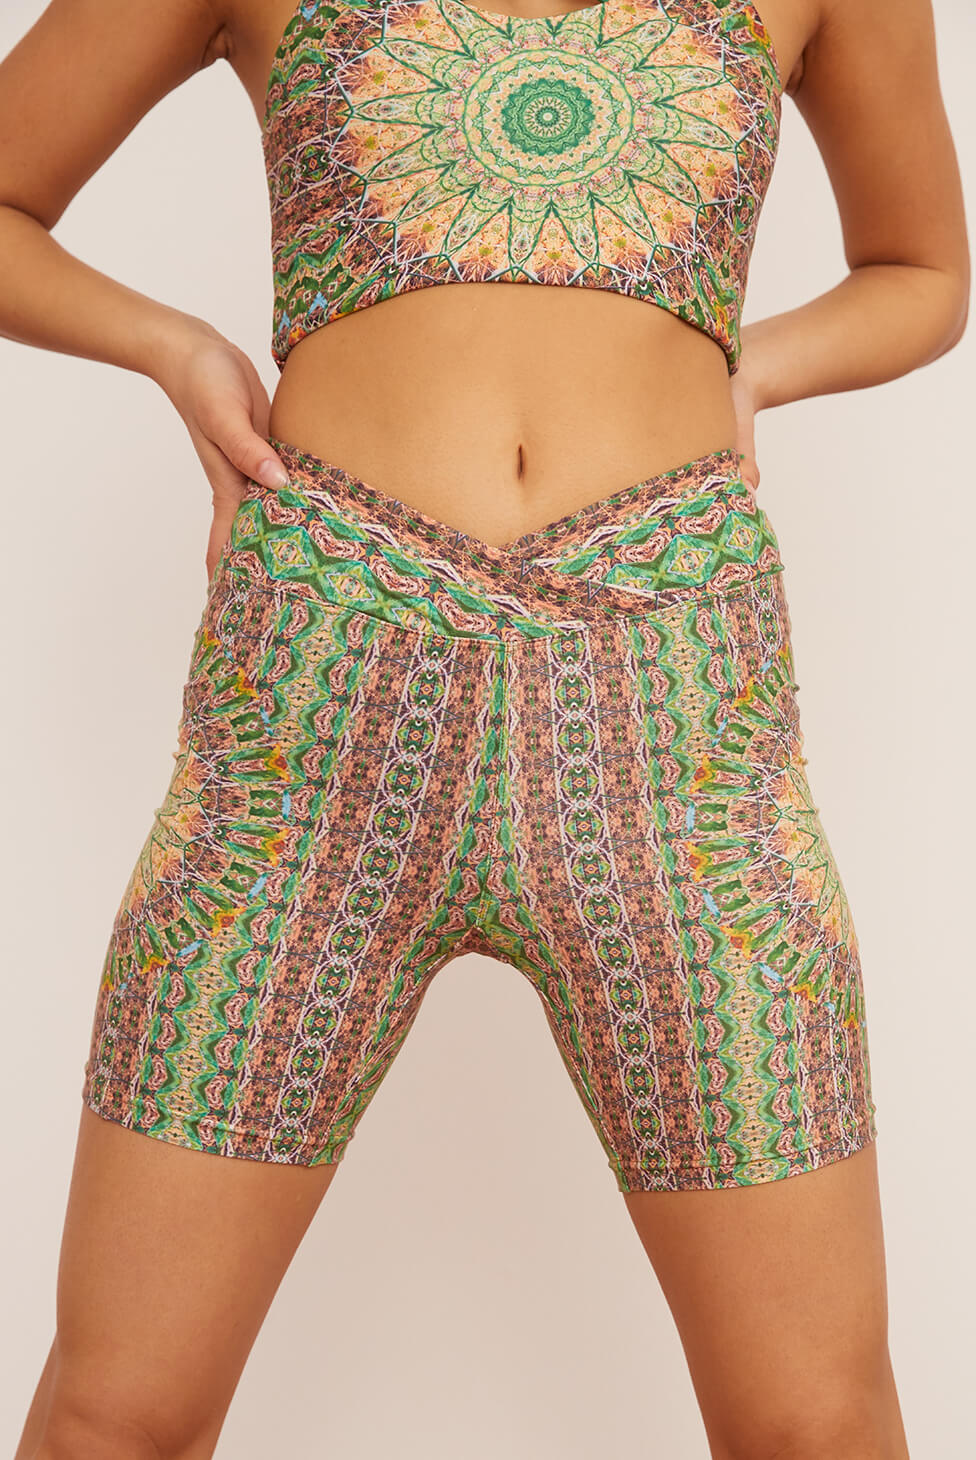 Fauna Midi Bike Short